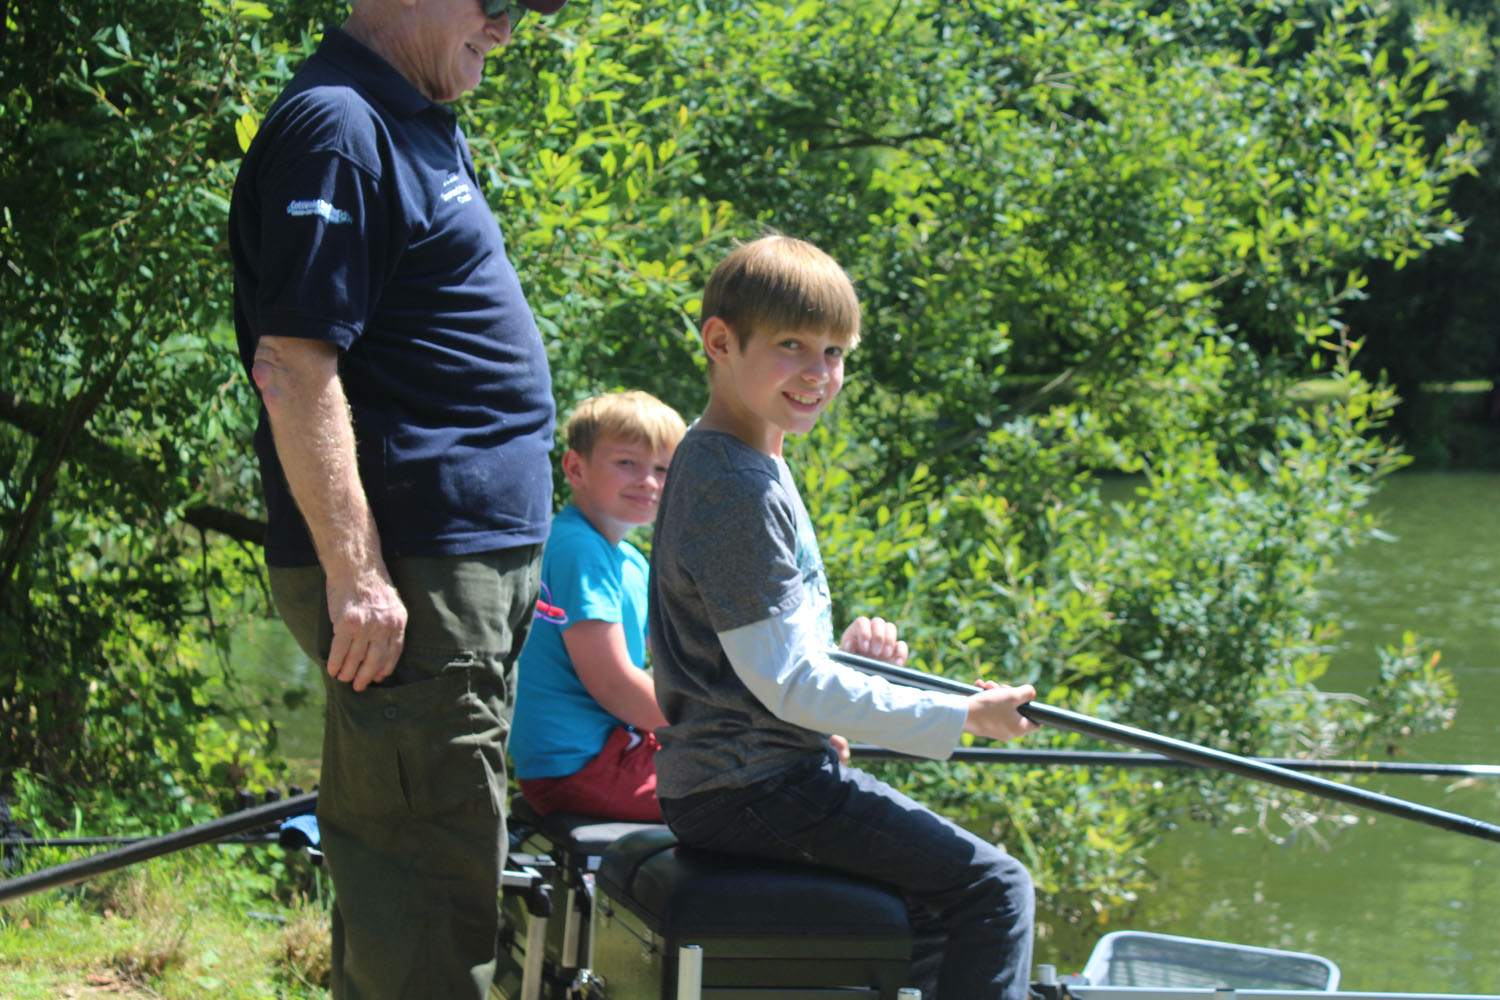 South Cerney Angling Club, Angling Taster Day